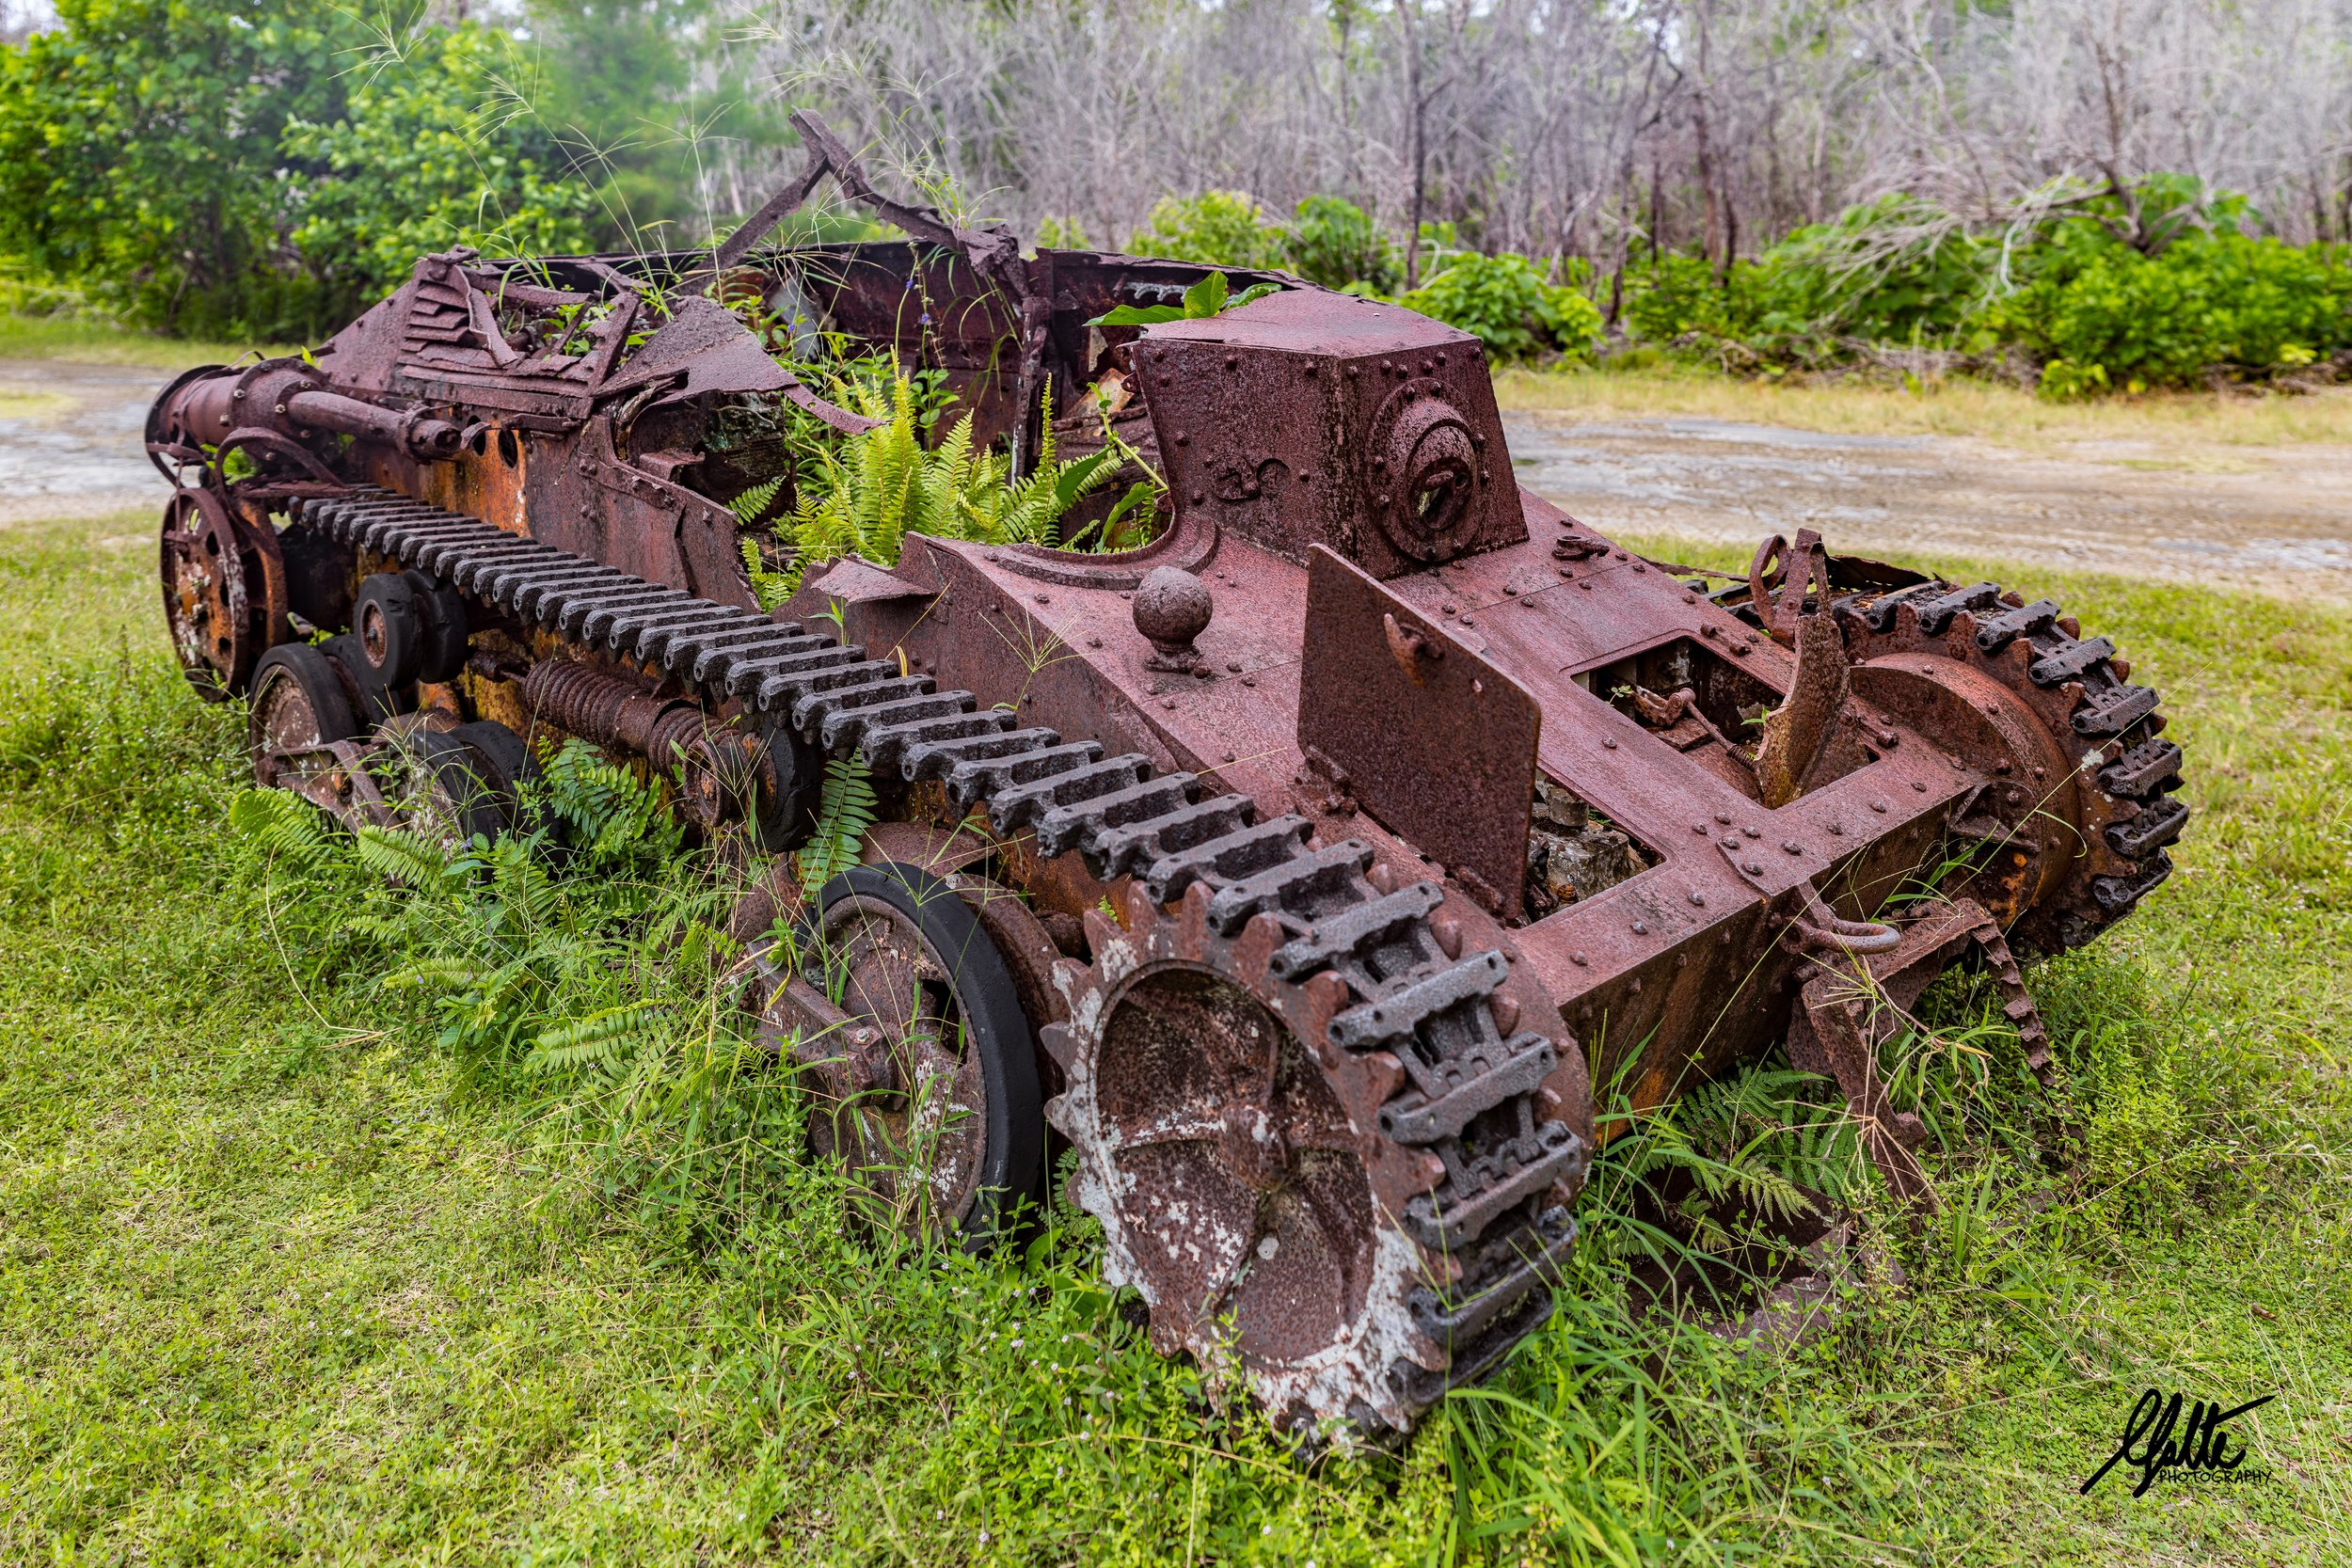 As the Marines were getting a tenous foothold near the end of the first day, the Japanese counterattacked them to push them off the beaches with 15 of these Type 95 light tanks, all of which were quickly destroyed. This one never made it near to the beaches having been destroyed near the airfield.